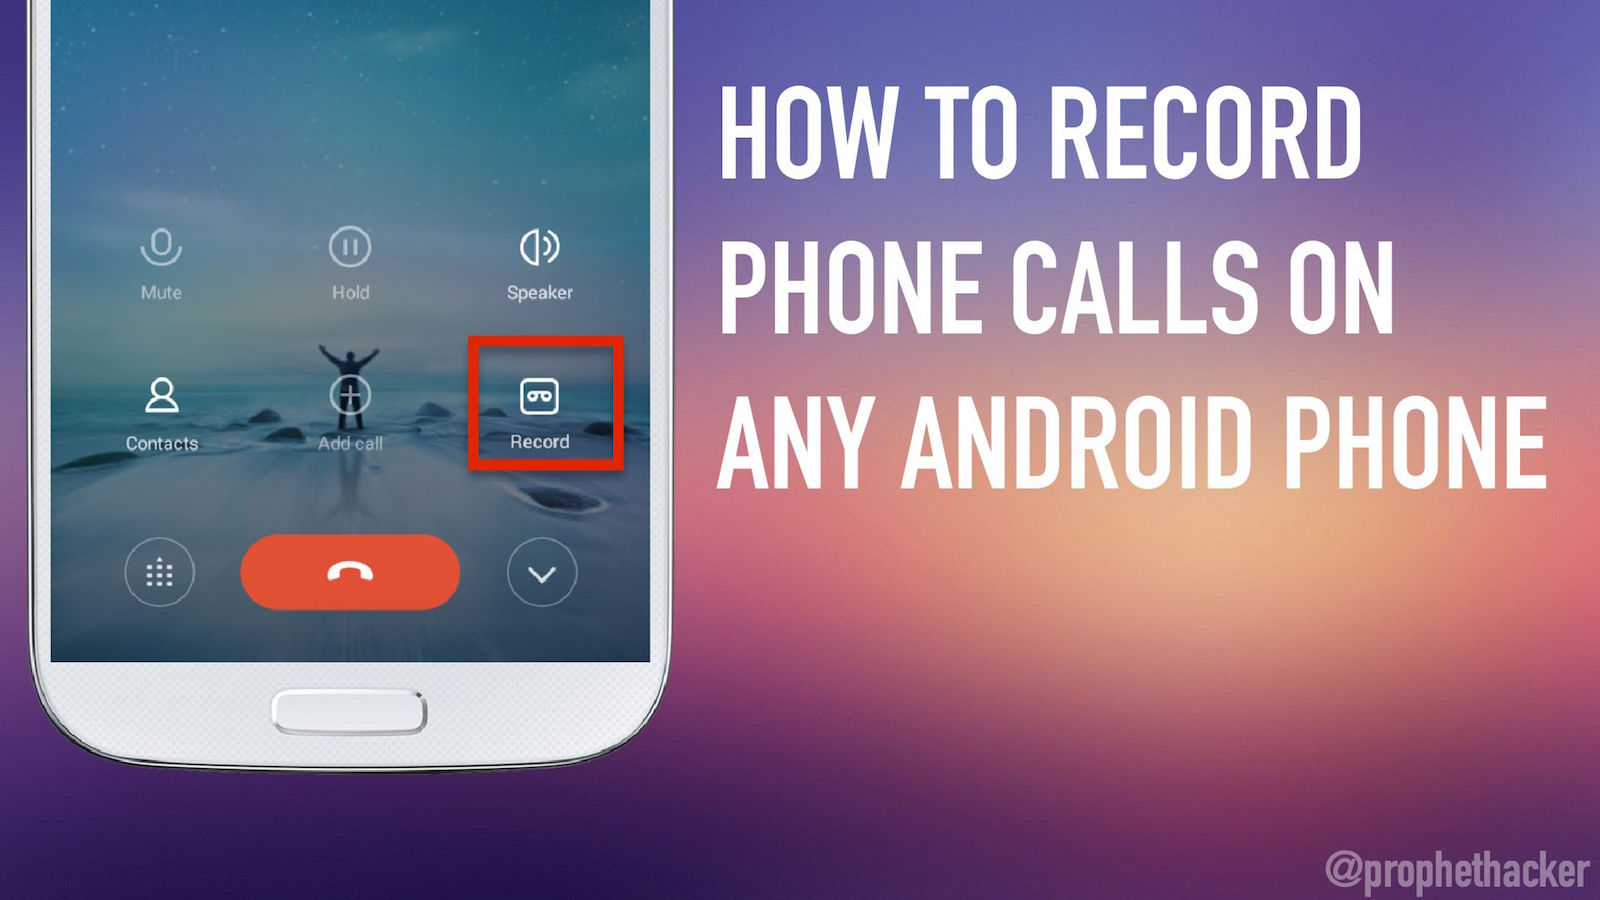 How to Record Phone Calls on Any Android Phone